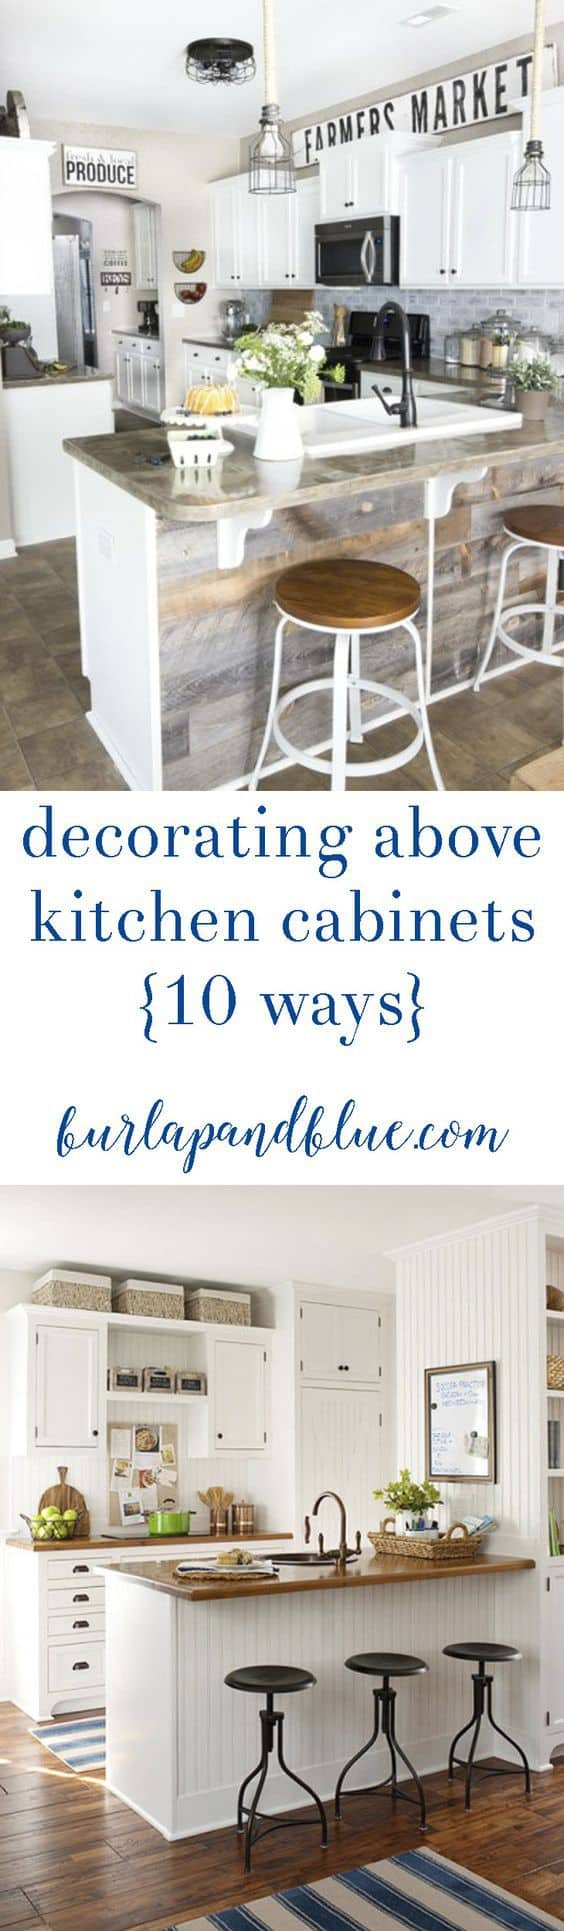 how to decorate above cabinets